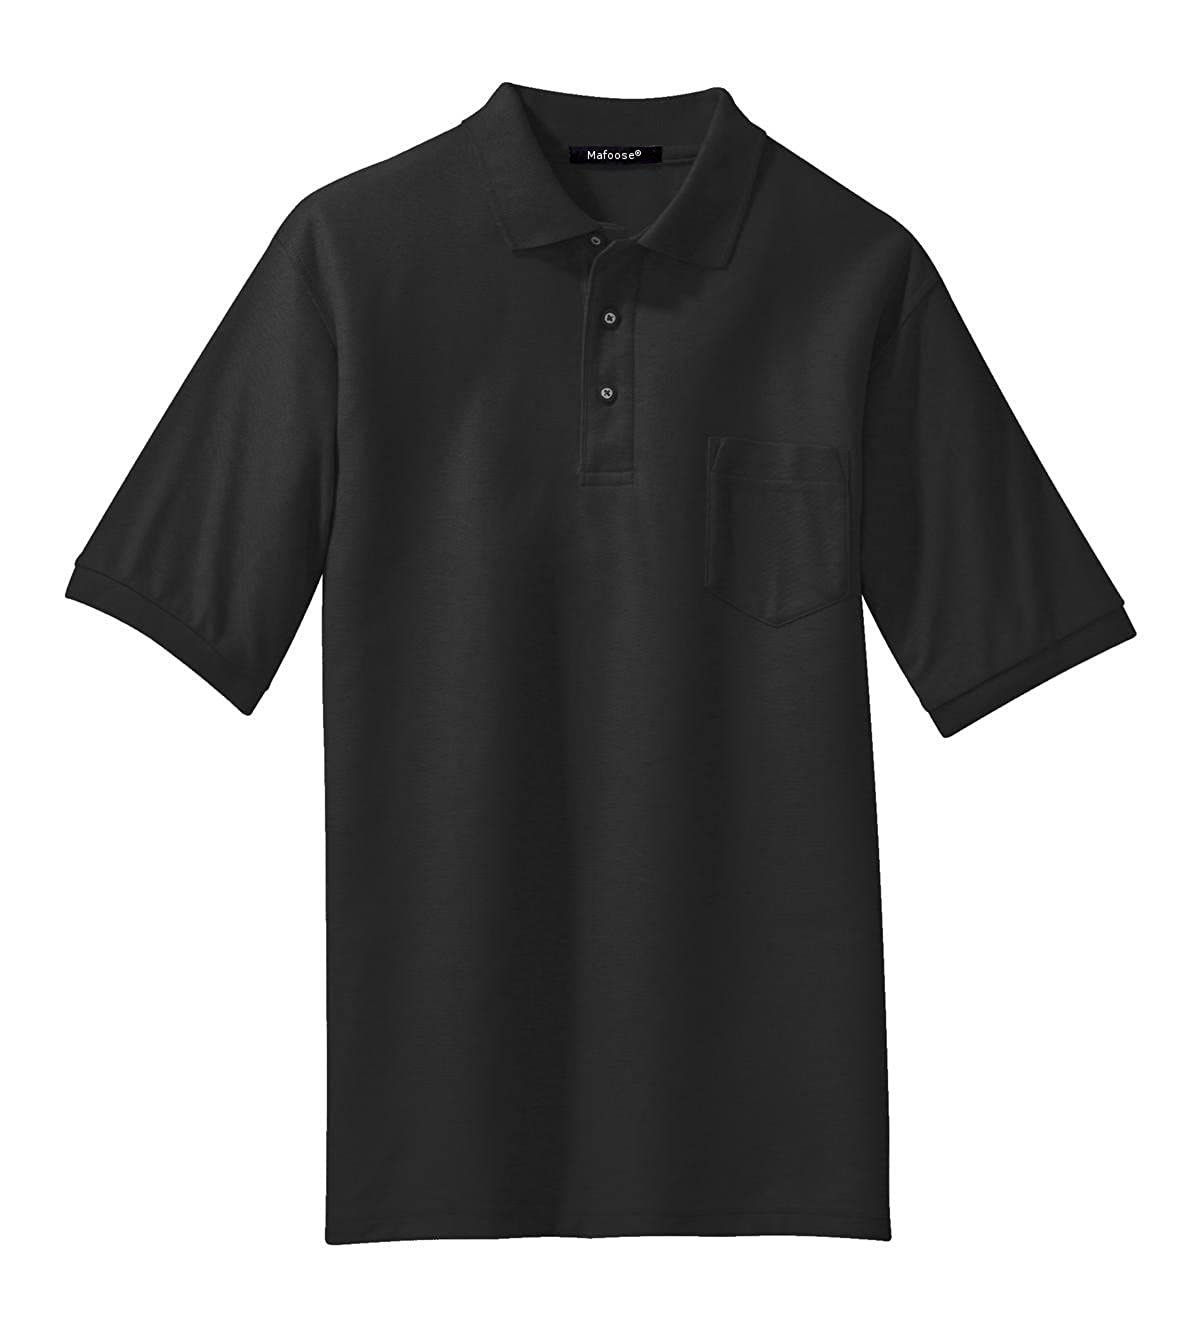 Mafoose Mens Silk Touch Polo with Pocket